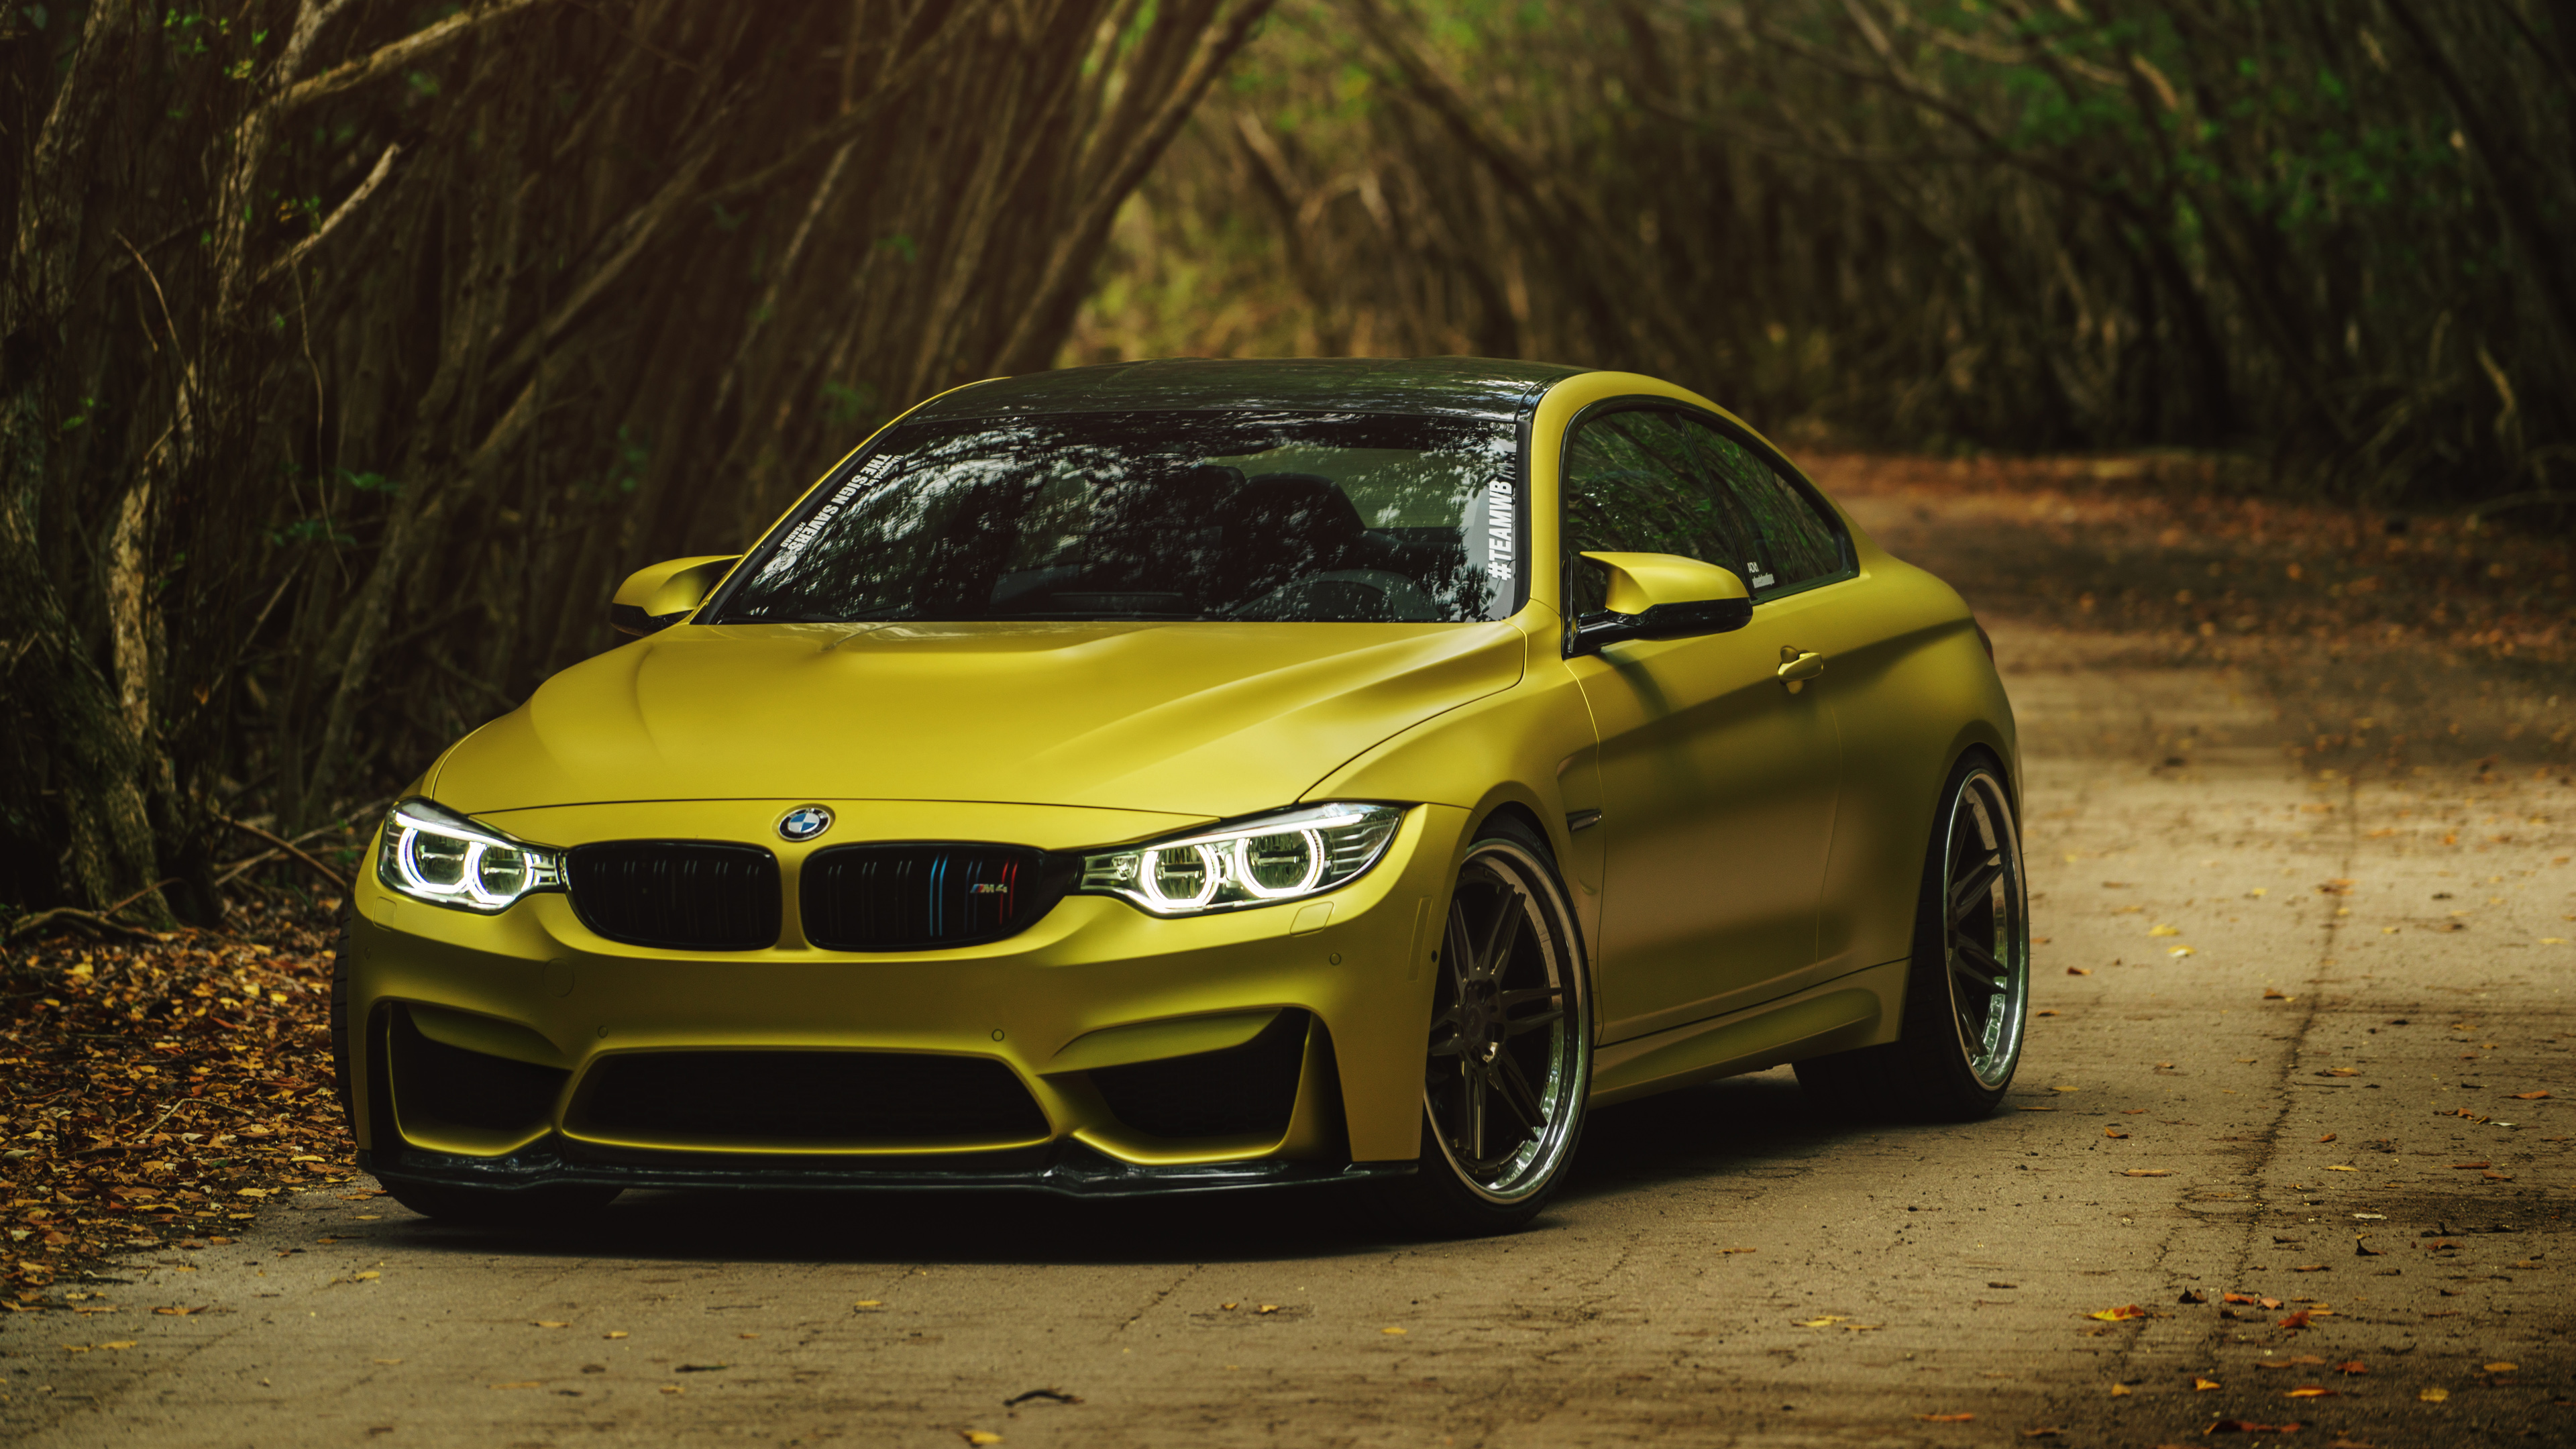 3840x2160 - BMW M4 Wallpapers 1